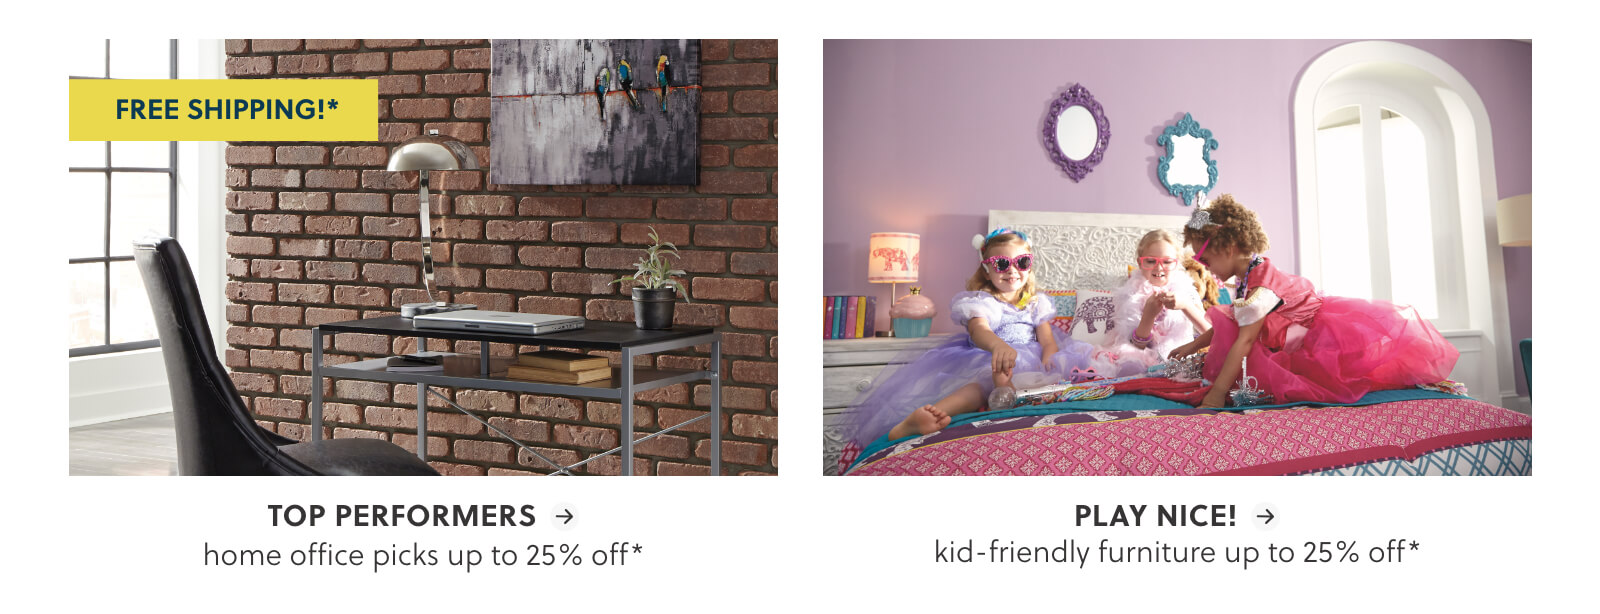 Home Office, Best Selling Kids Furniture